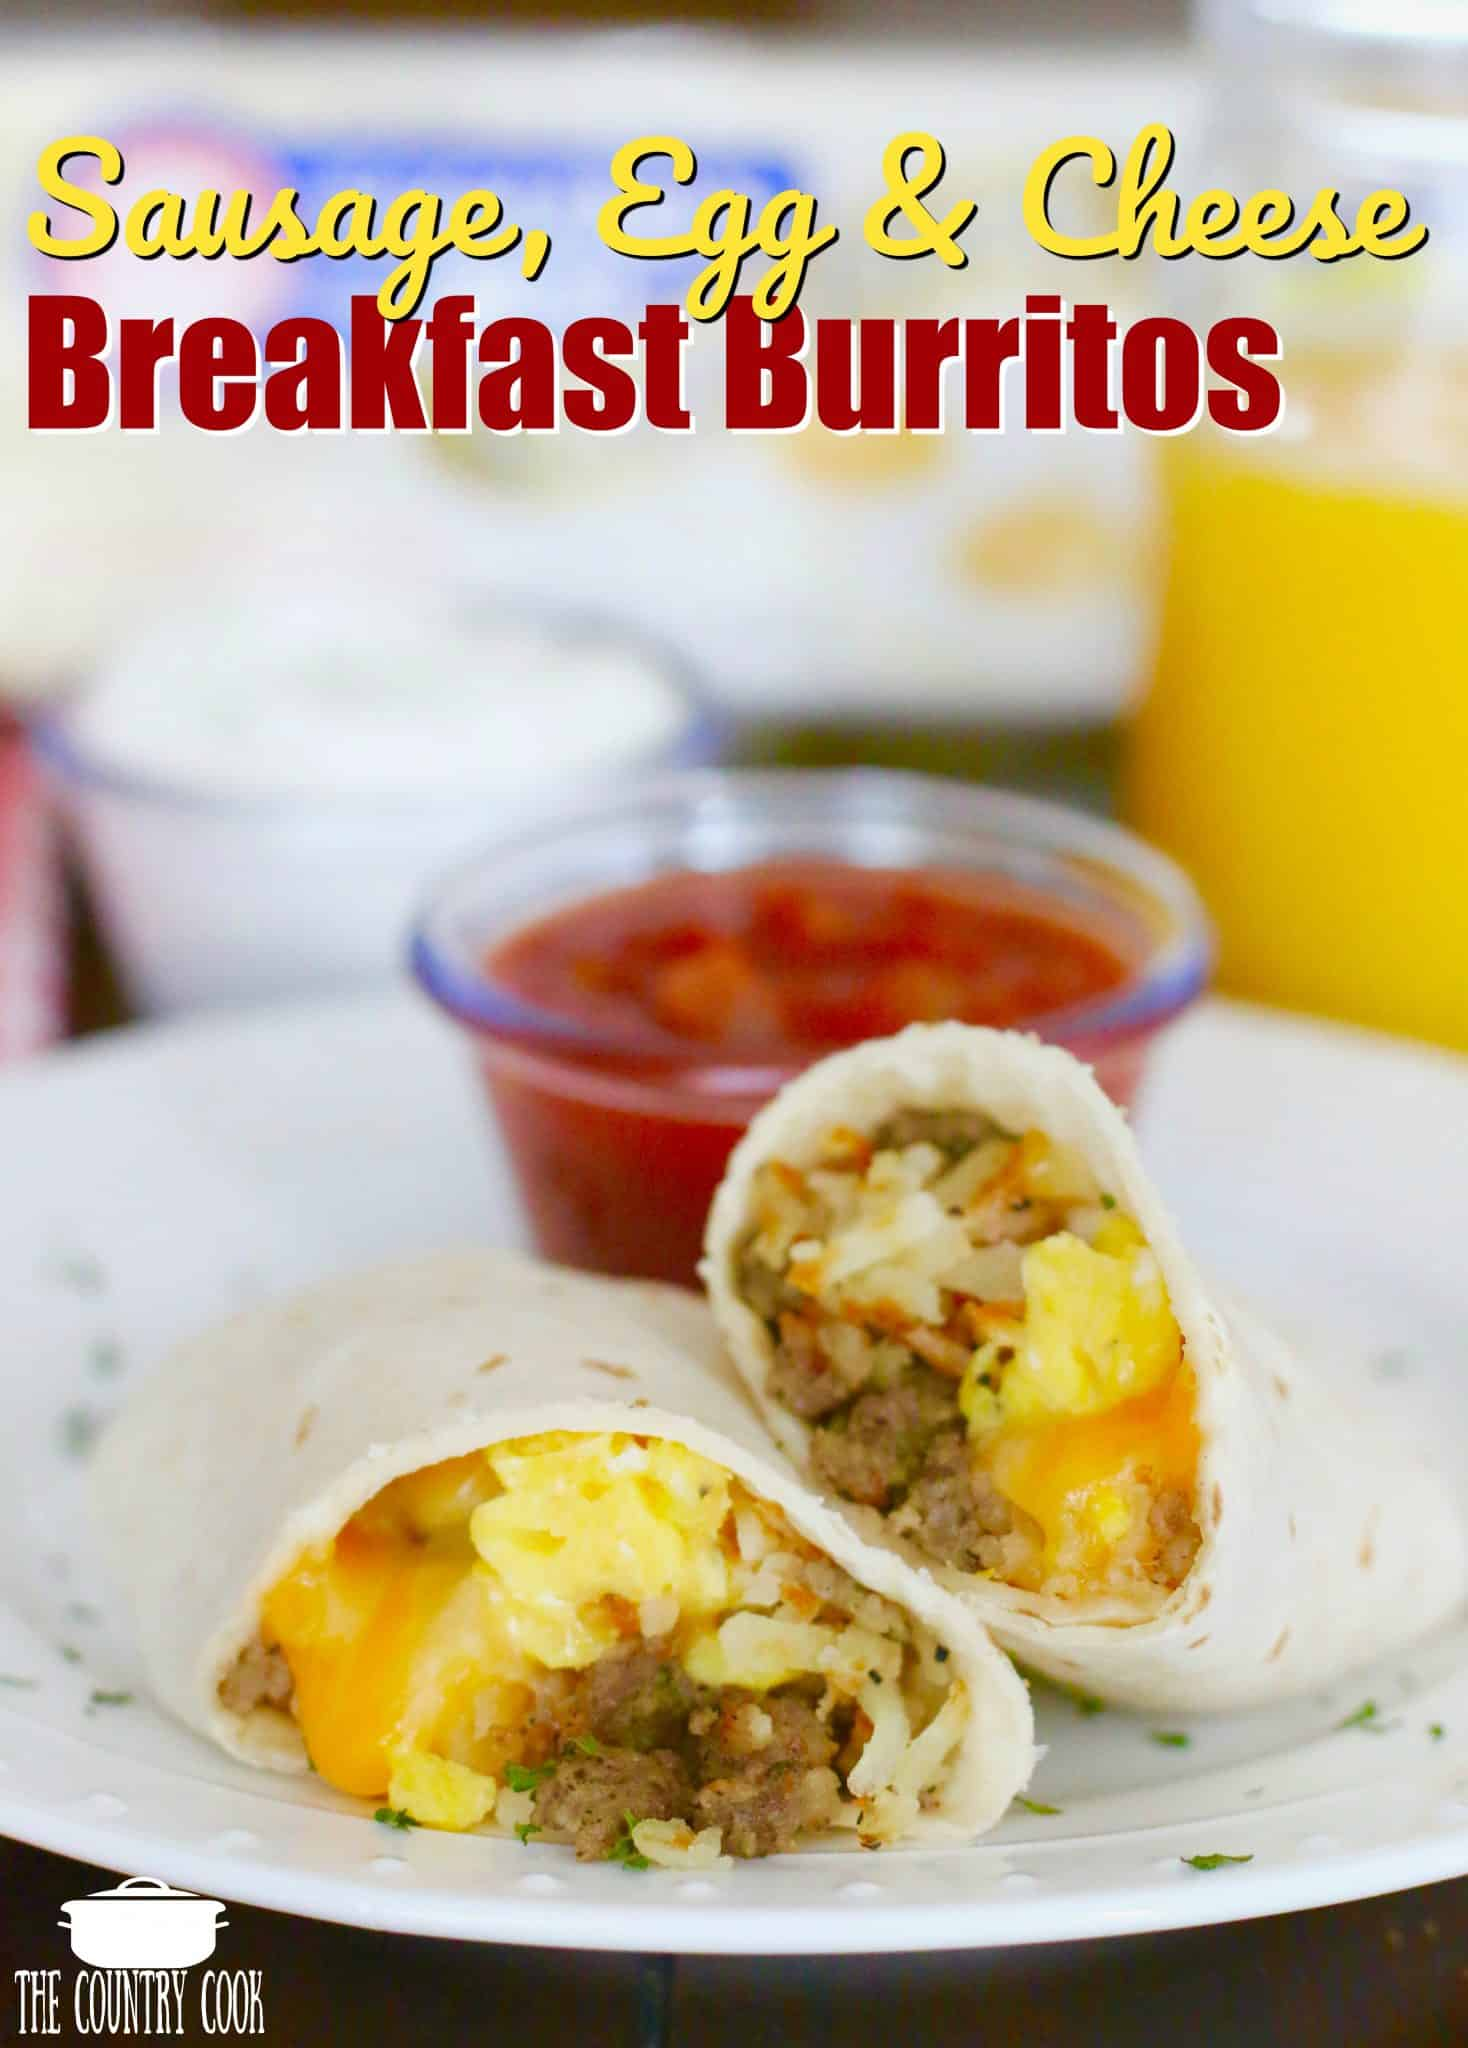 Sausage, Egg & Cheese Breakfast Burritos (freezer friendly) recipe from The Country Cook. Sliced burrito shown on a white plate with salsa and sour cream in the background.